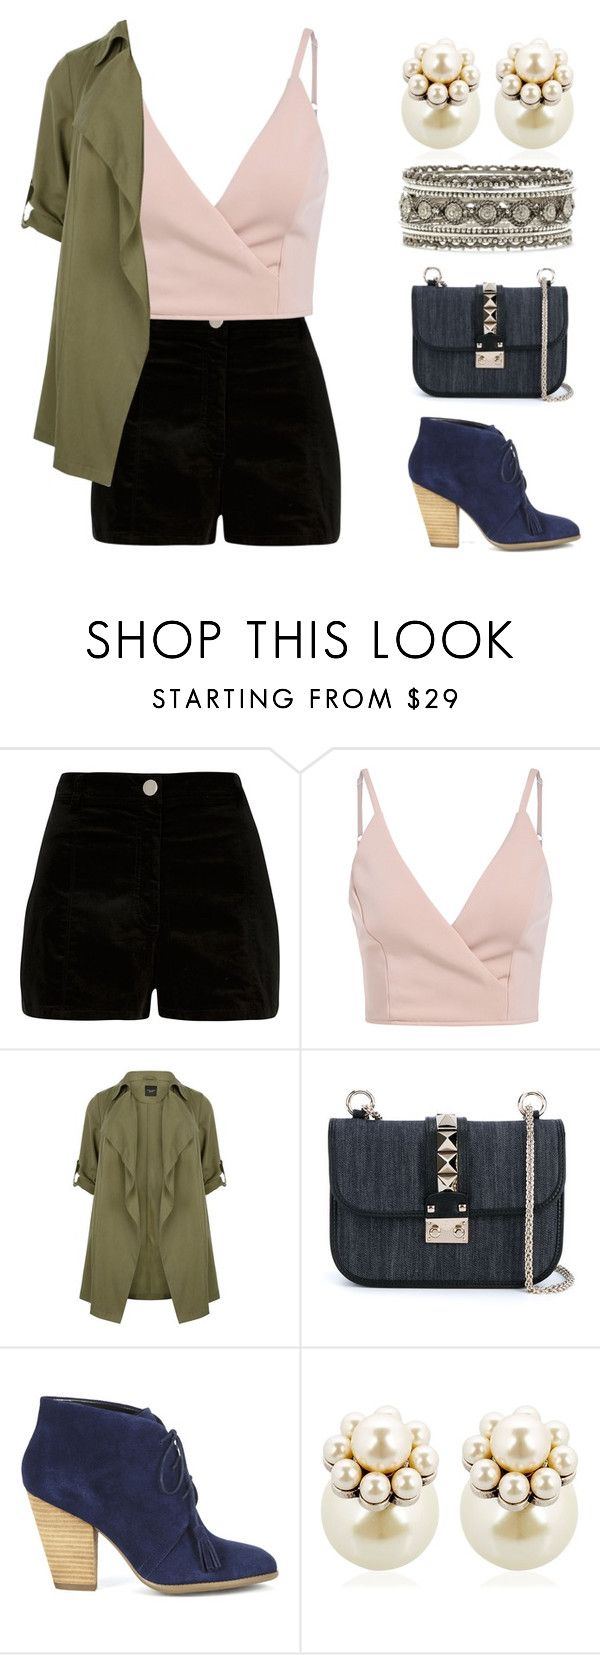 """""""Untitled #130"""" by ctpyp on Polyvore featuring River Island, Valentino, Sole Society, Mawi and Forever 21"""